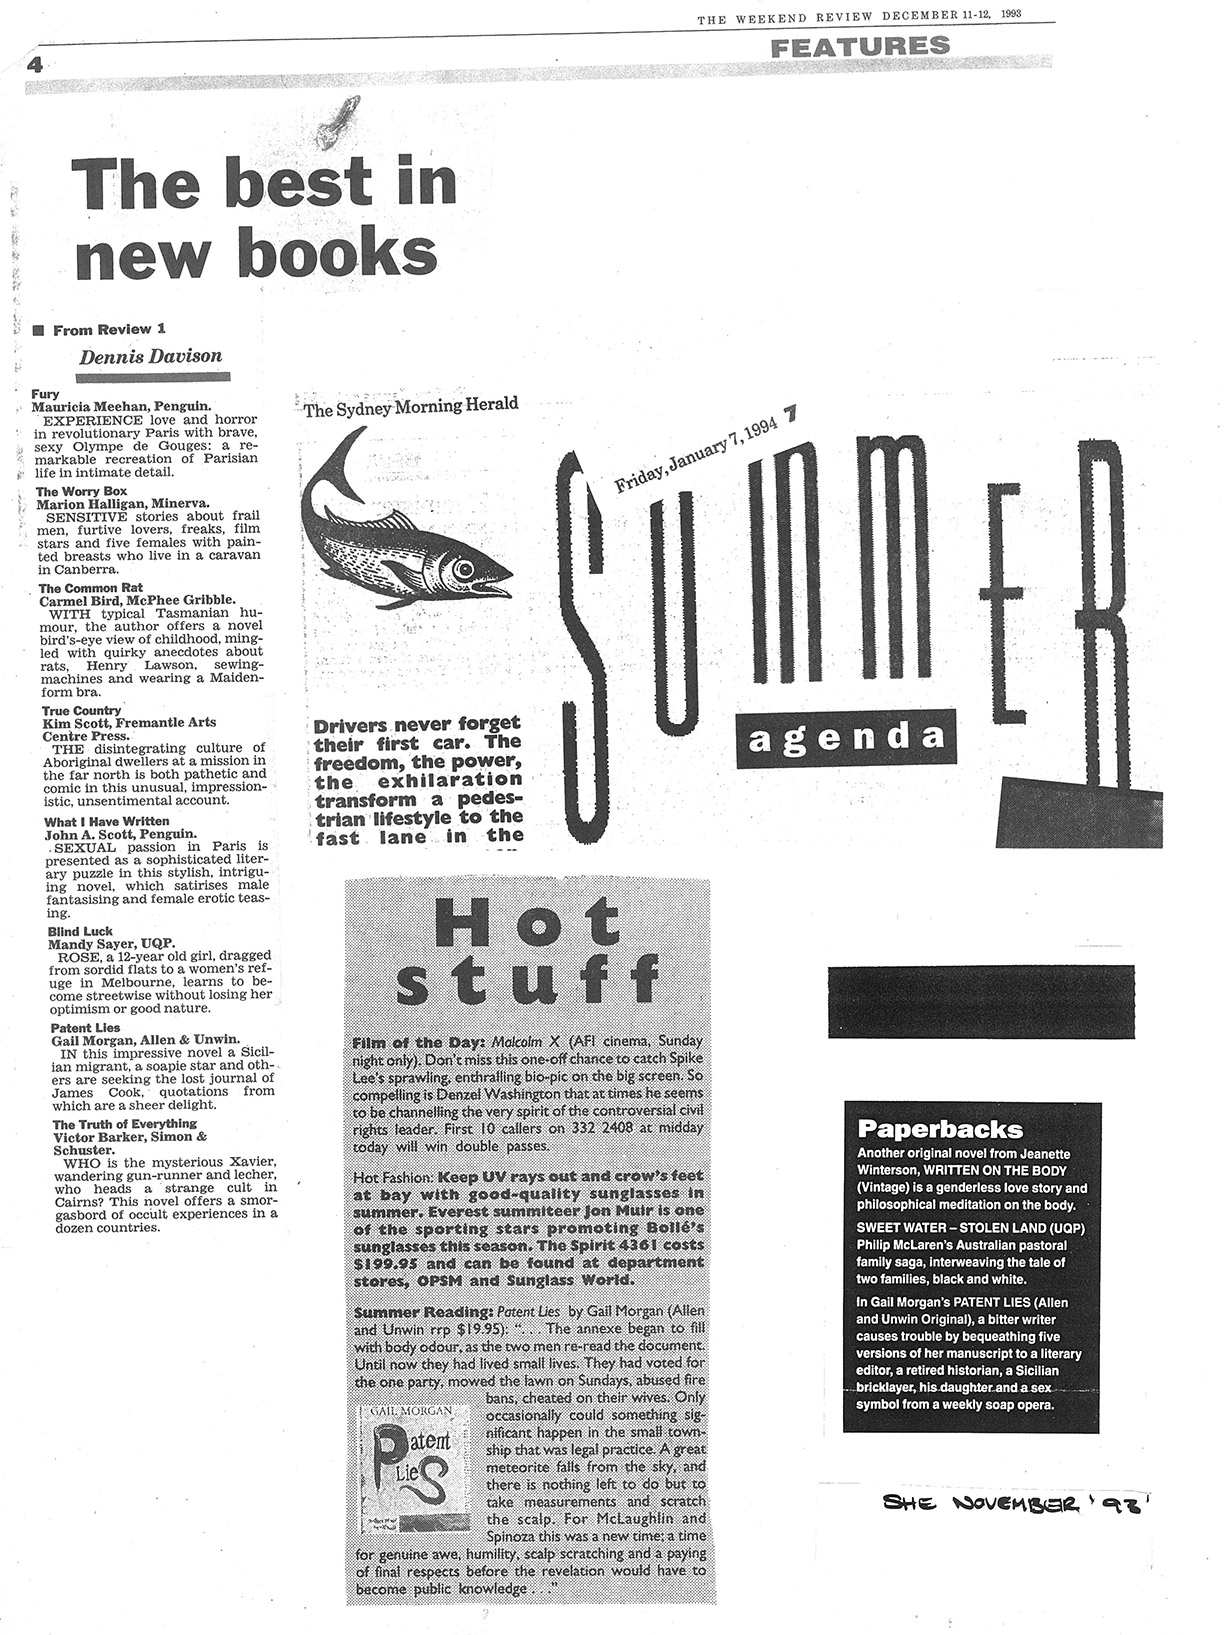 The Weekend Review – The Best in New Books '93